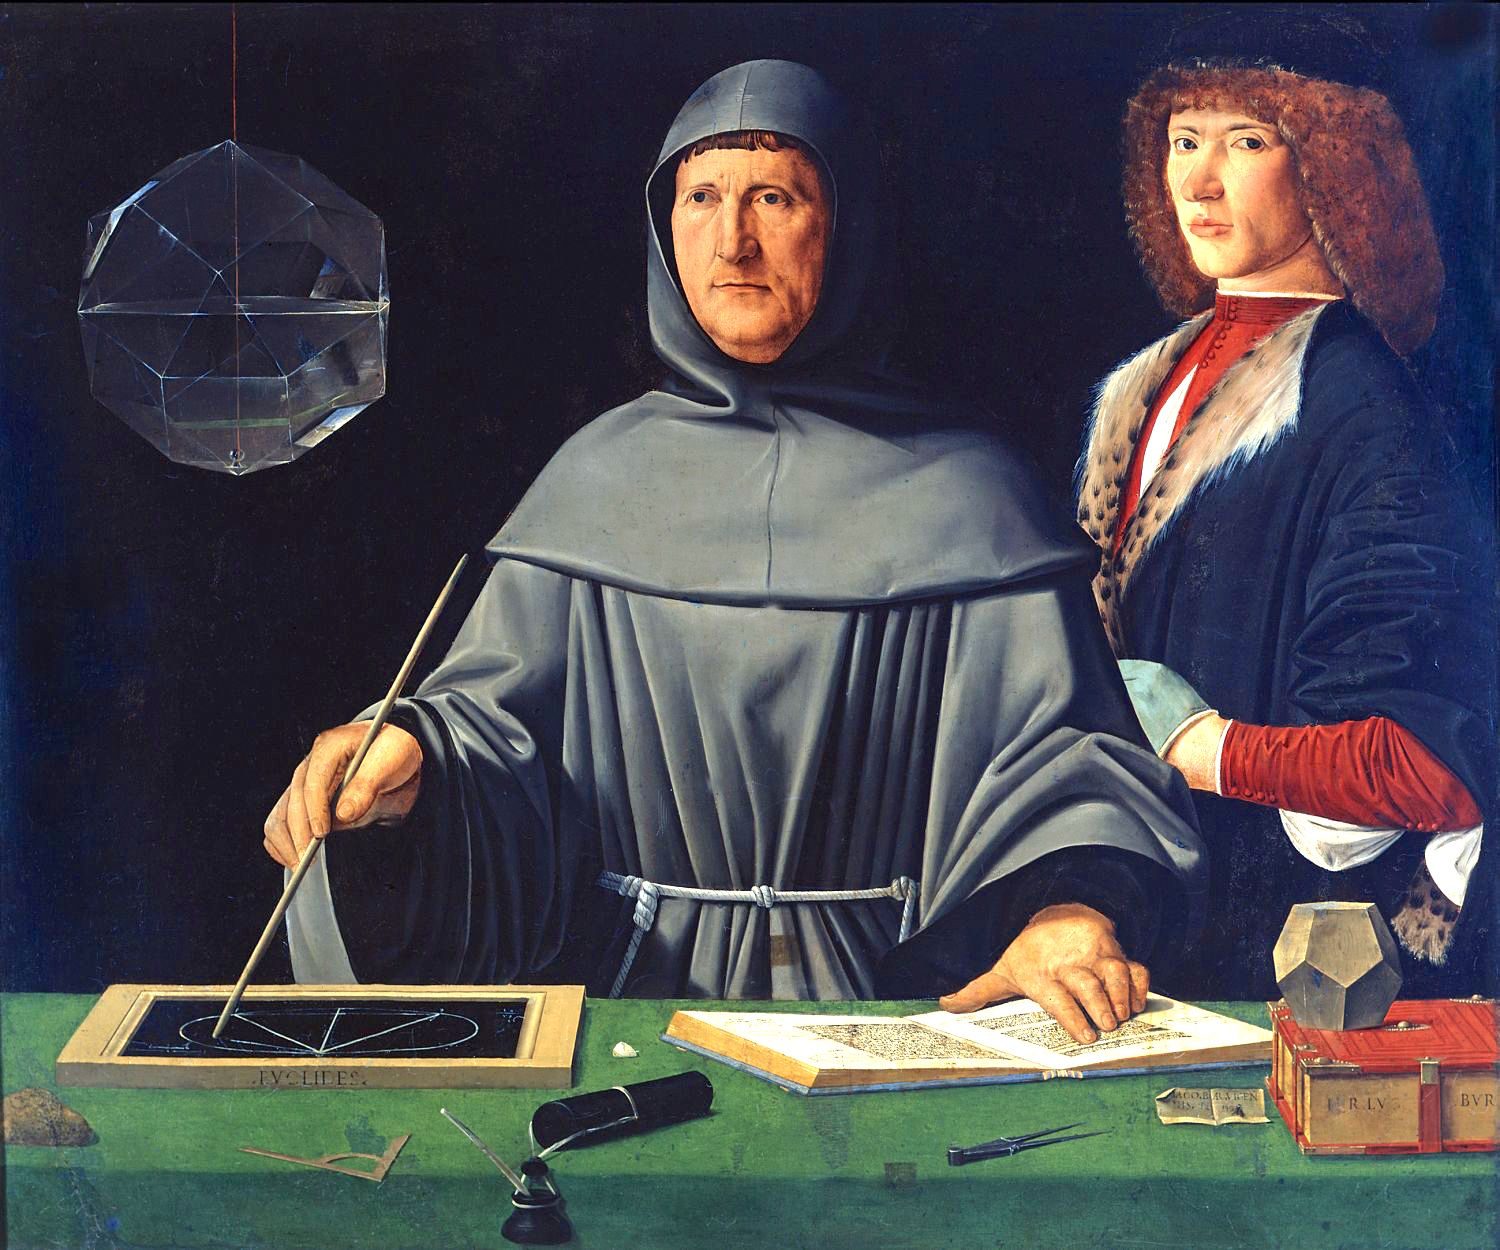 https://upload.wikimedia.org/wikipedia/commons/2/2a/Pacioli.jpg